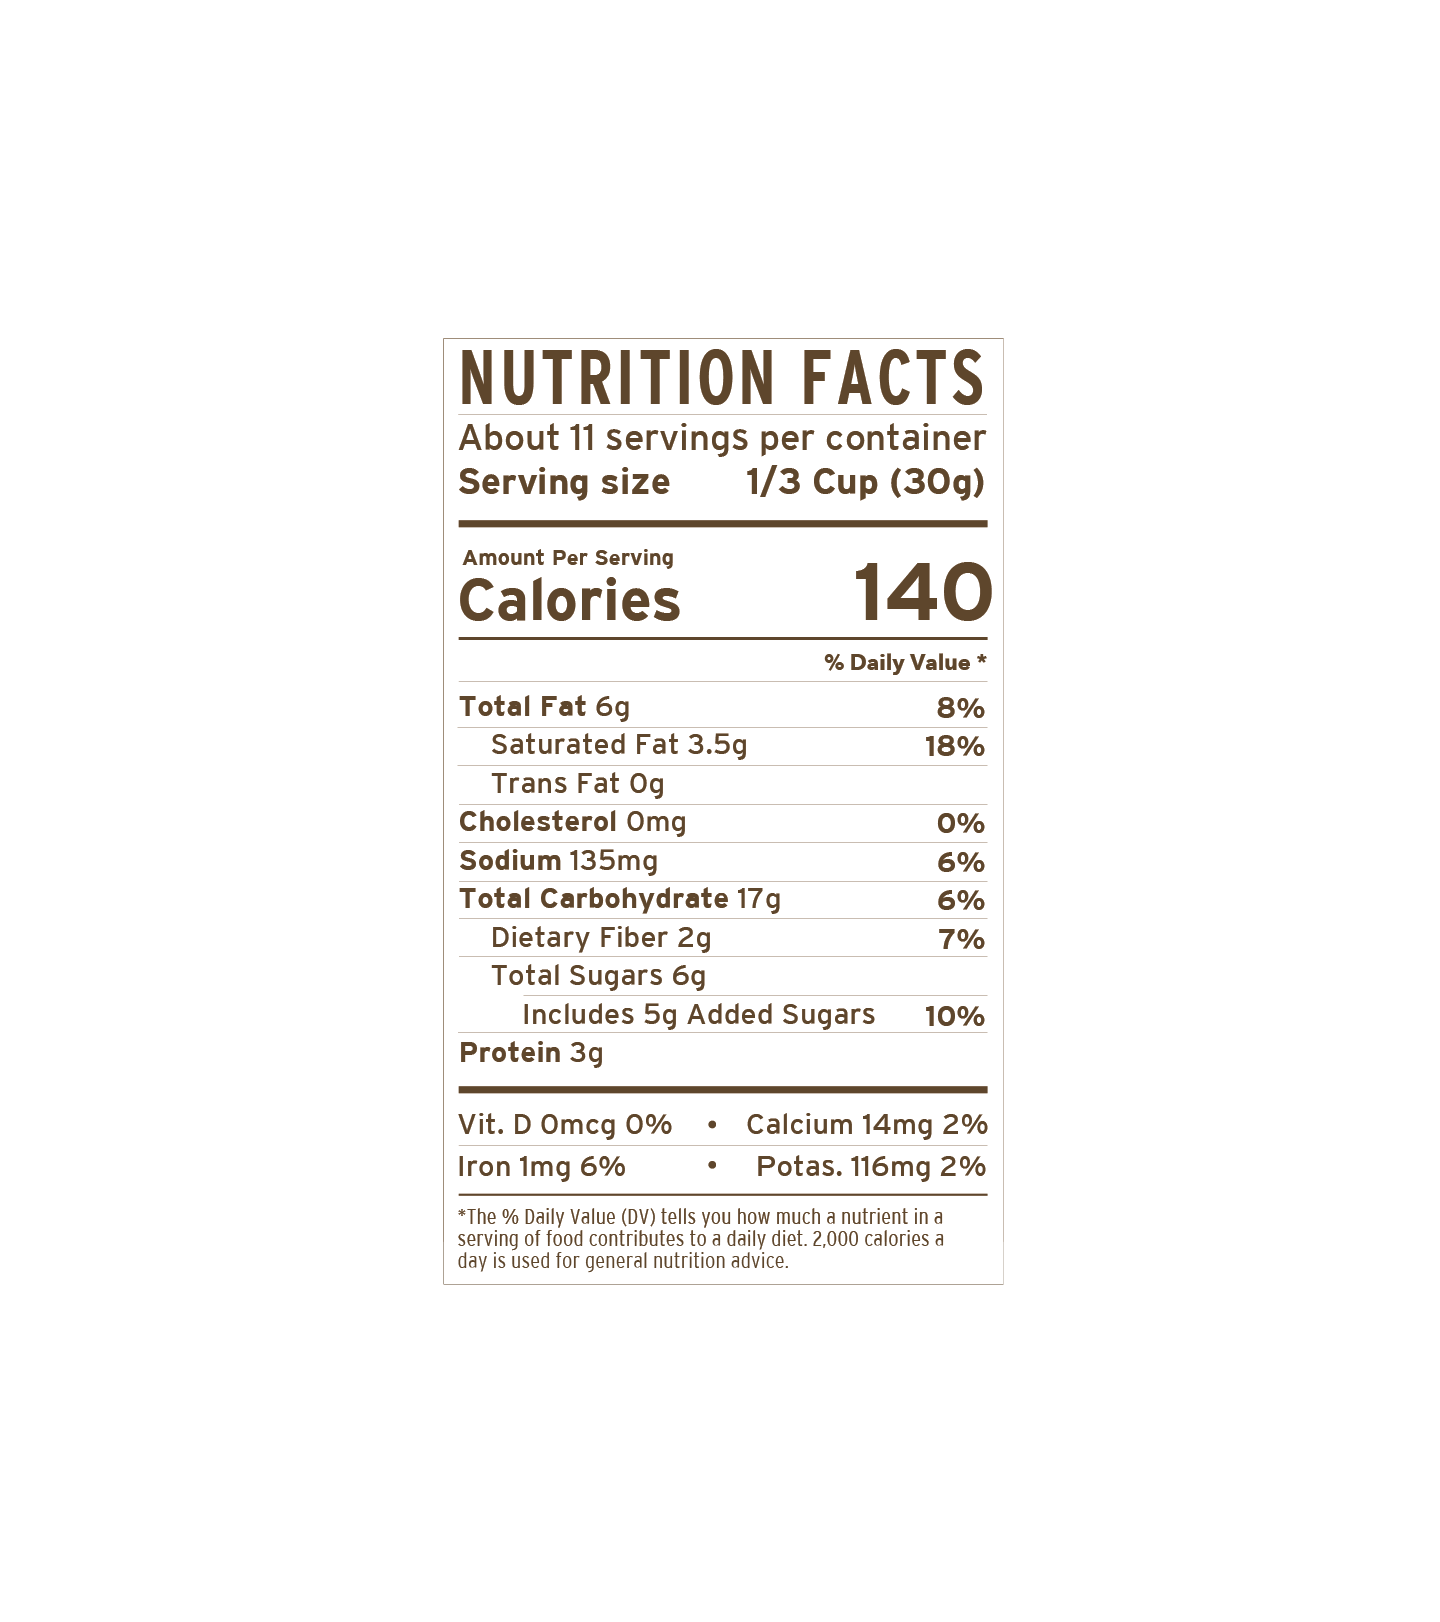 nutritional-facts